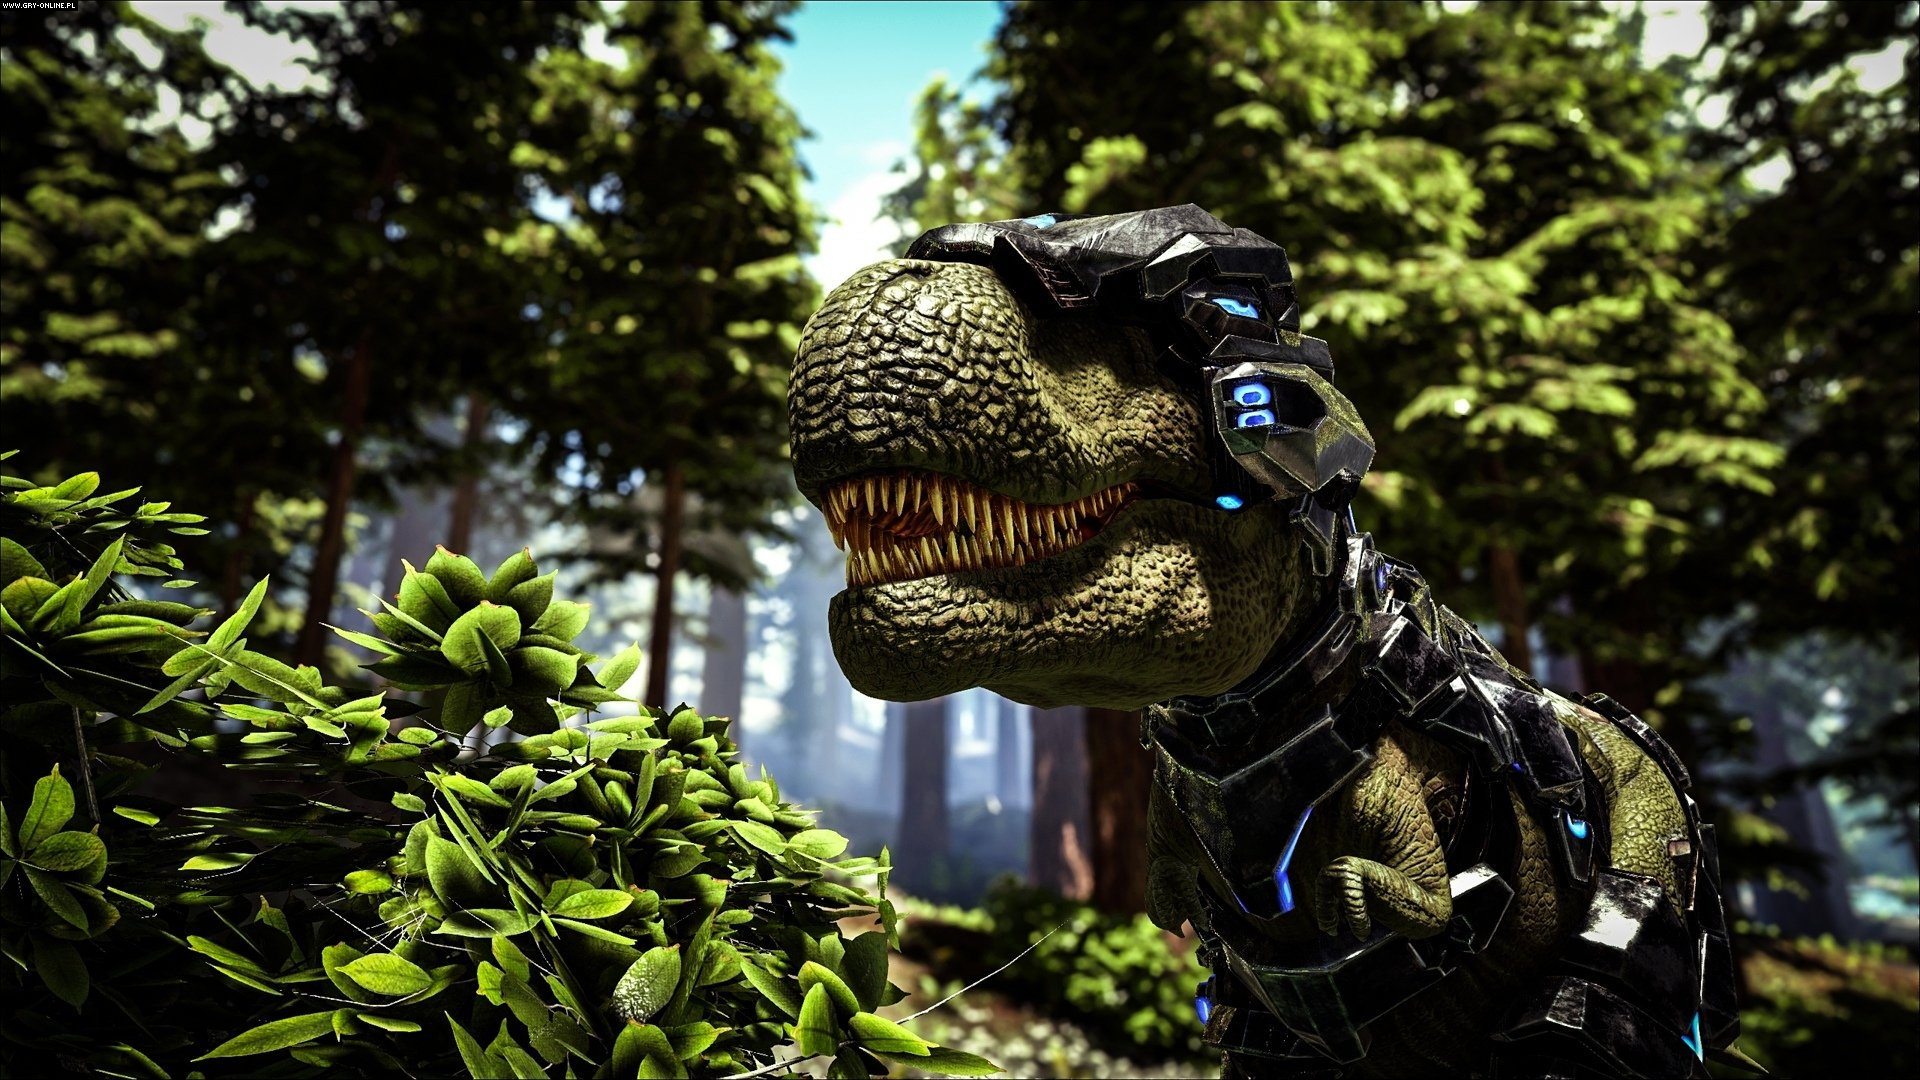 ARK: Survival Evolved PC, PS4, XONE, Switch Gry Screen 75/139, Studio Wildcard